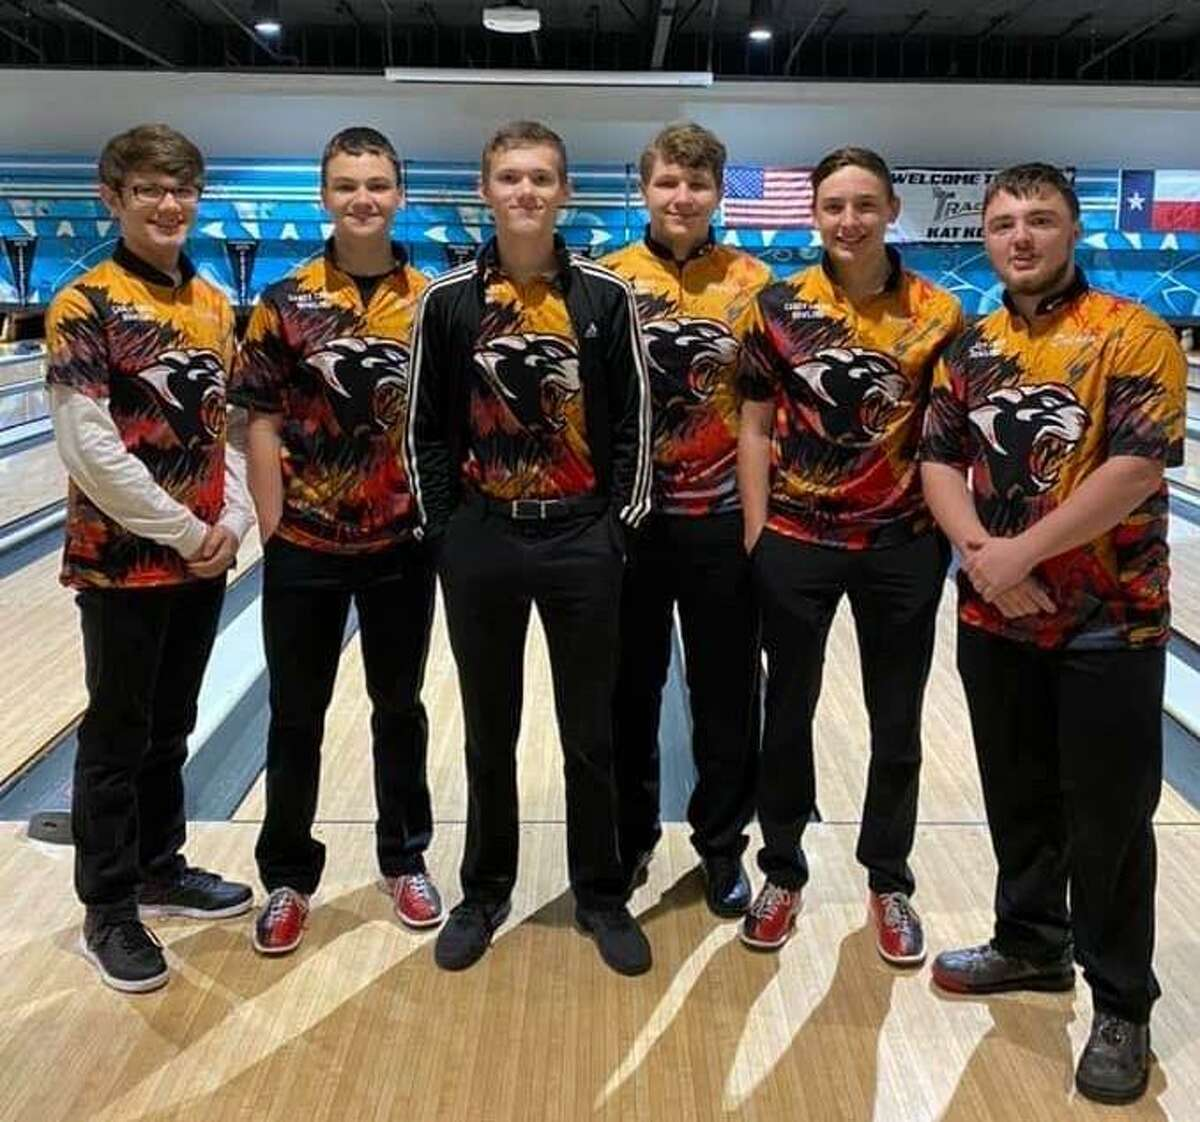 The Caney Creek bowling team qualified for the THSBC state tournament on March 1. But due to the coronavirus pandemic, the state tournament was canceled.